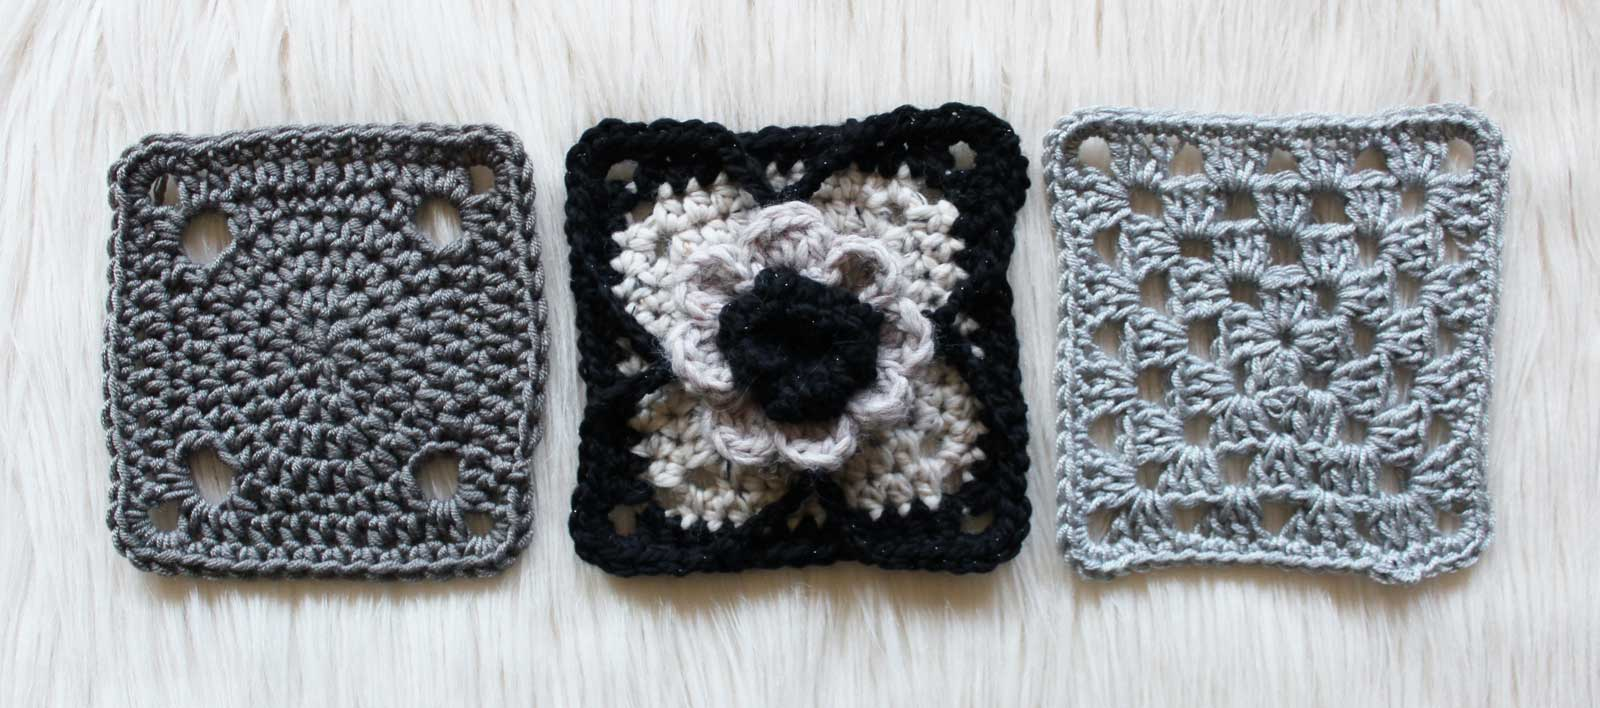 THNLife Granny Square Day 2020 : Simply Crochet Magazine